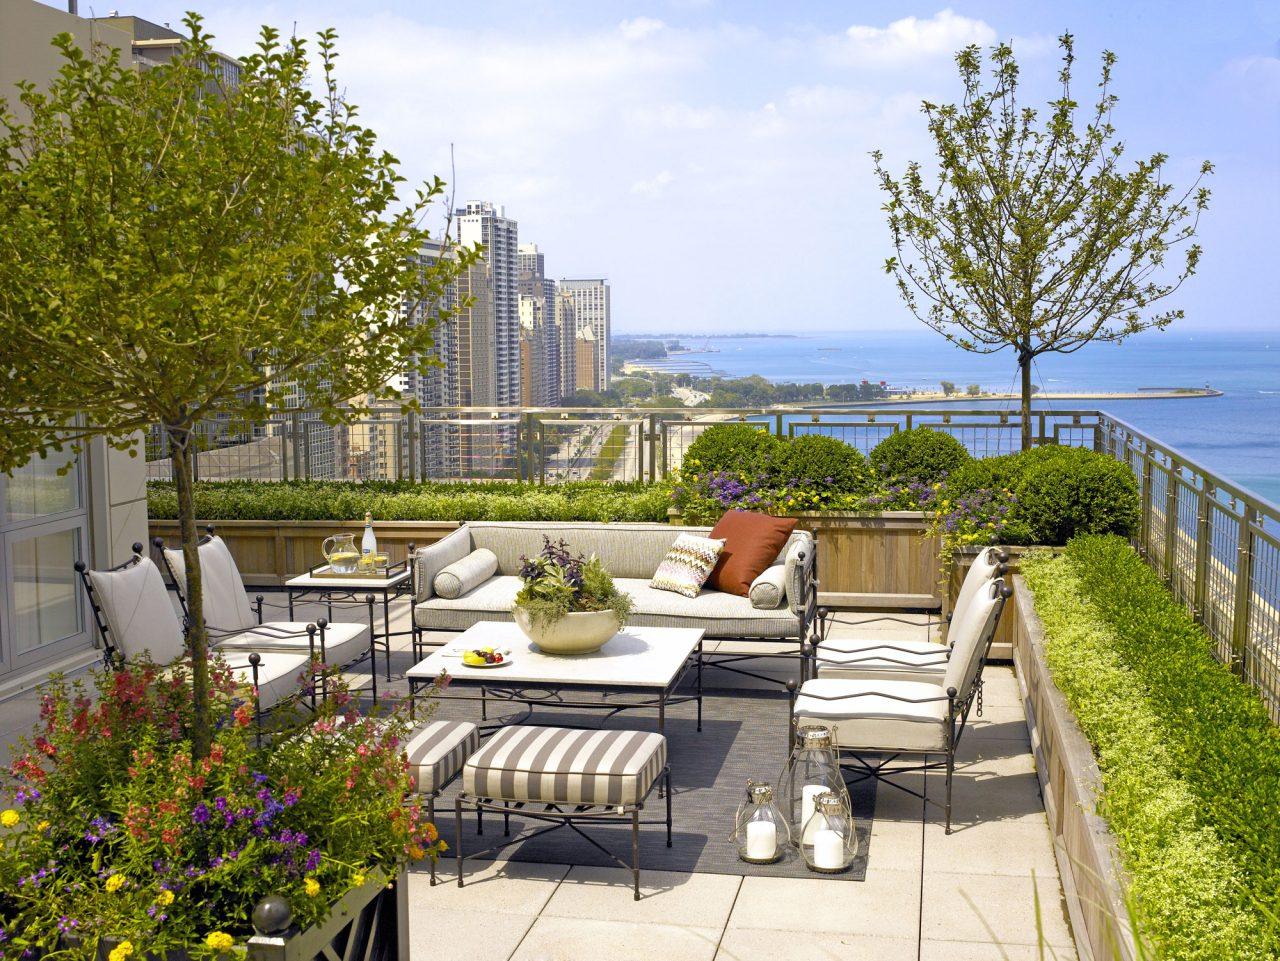 Lake Shore Drive, Chicago rooftop garden with boxed trees, boxwood hedges, and seasonal flowers